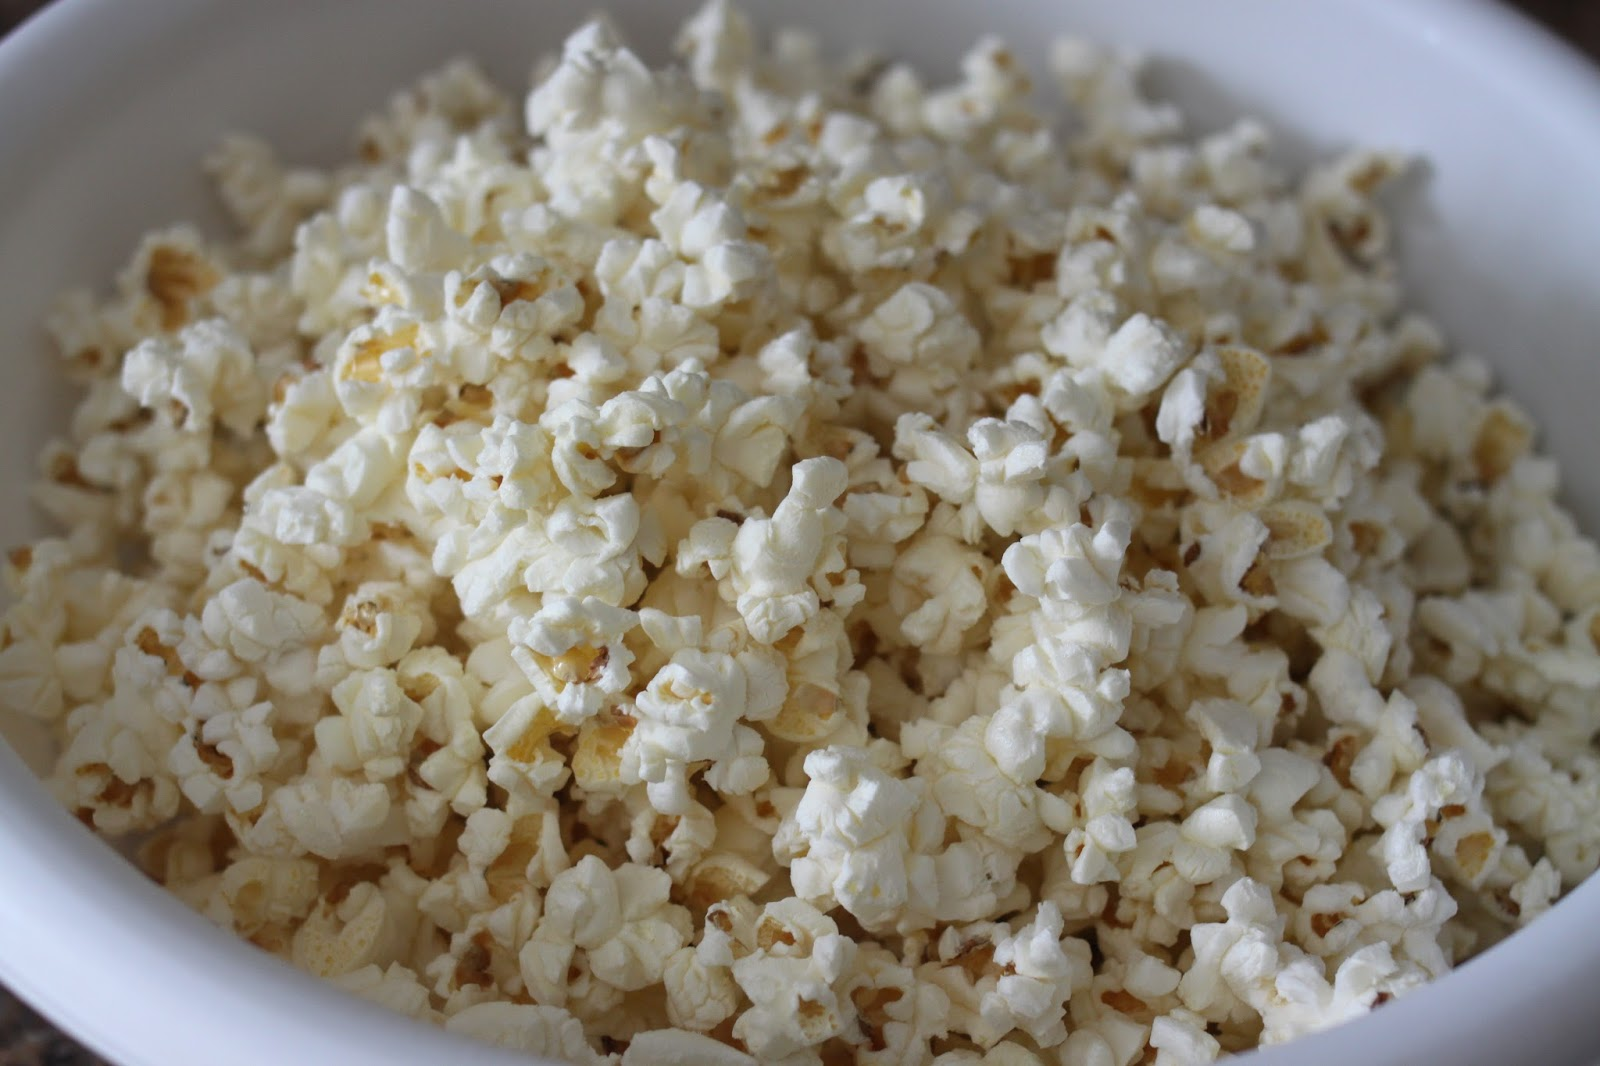 While your Popcorn is cooling, heat up your white chocolate/almond ...